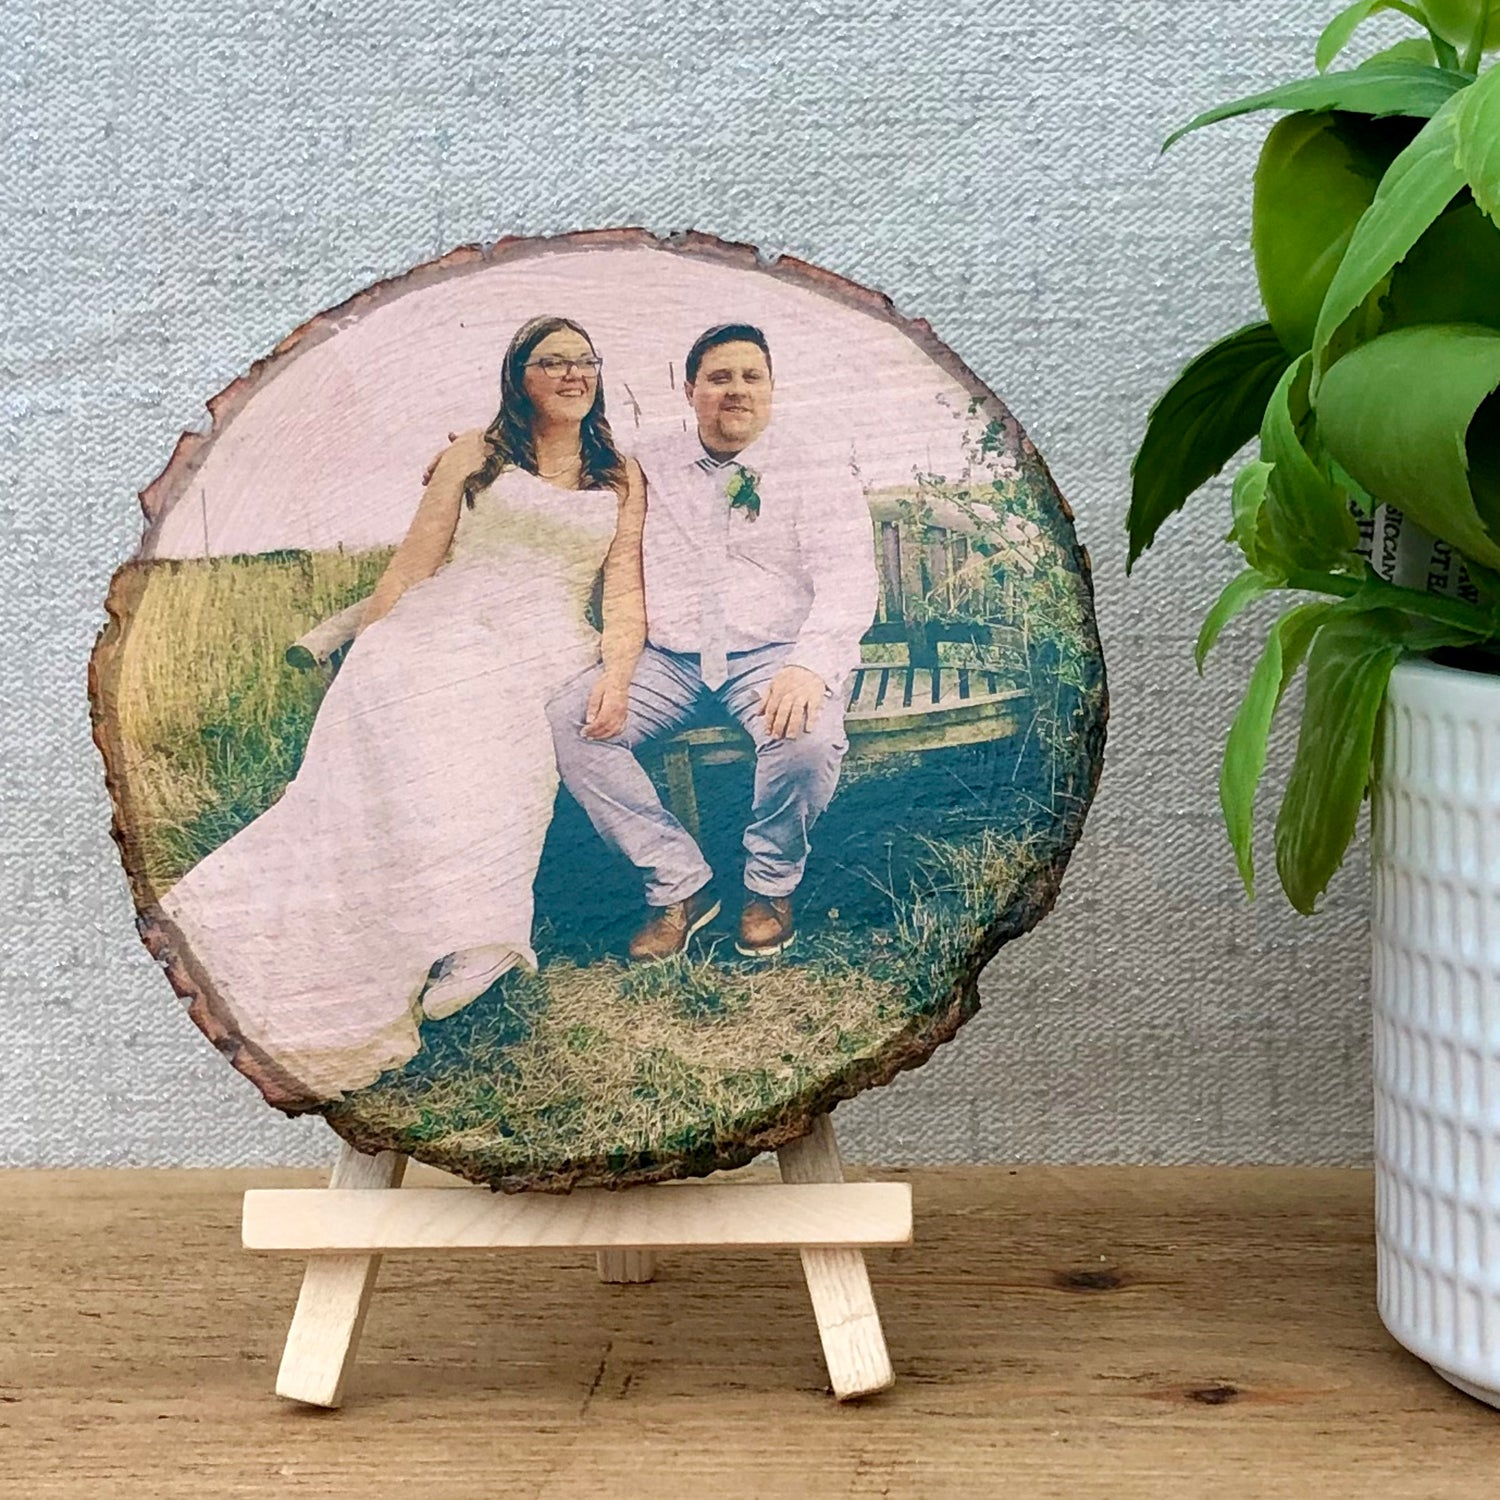 A wood slice photo plaque showing a bride and groom on their wedding day